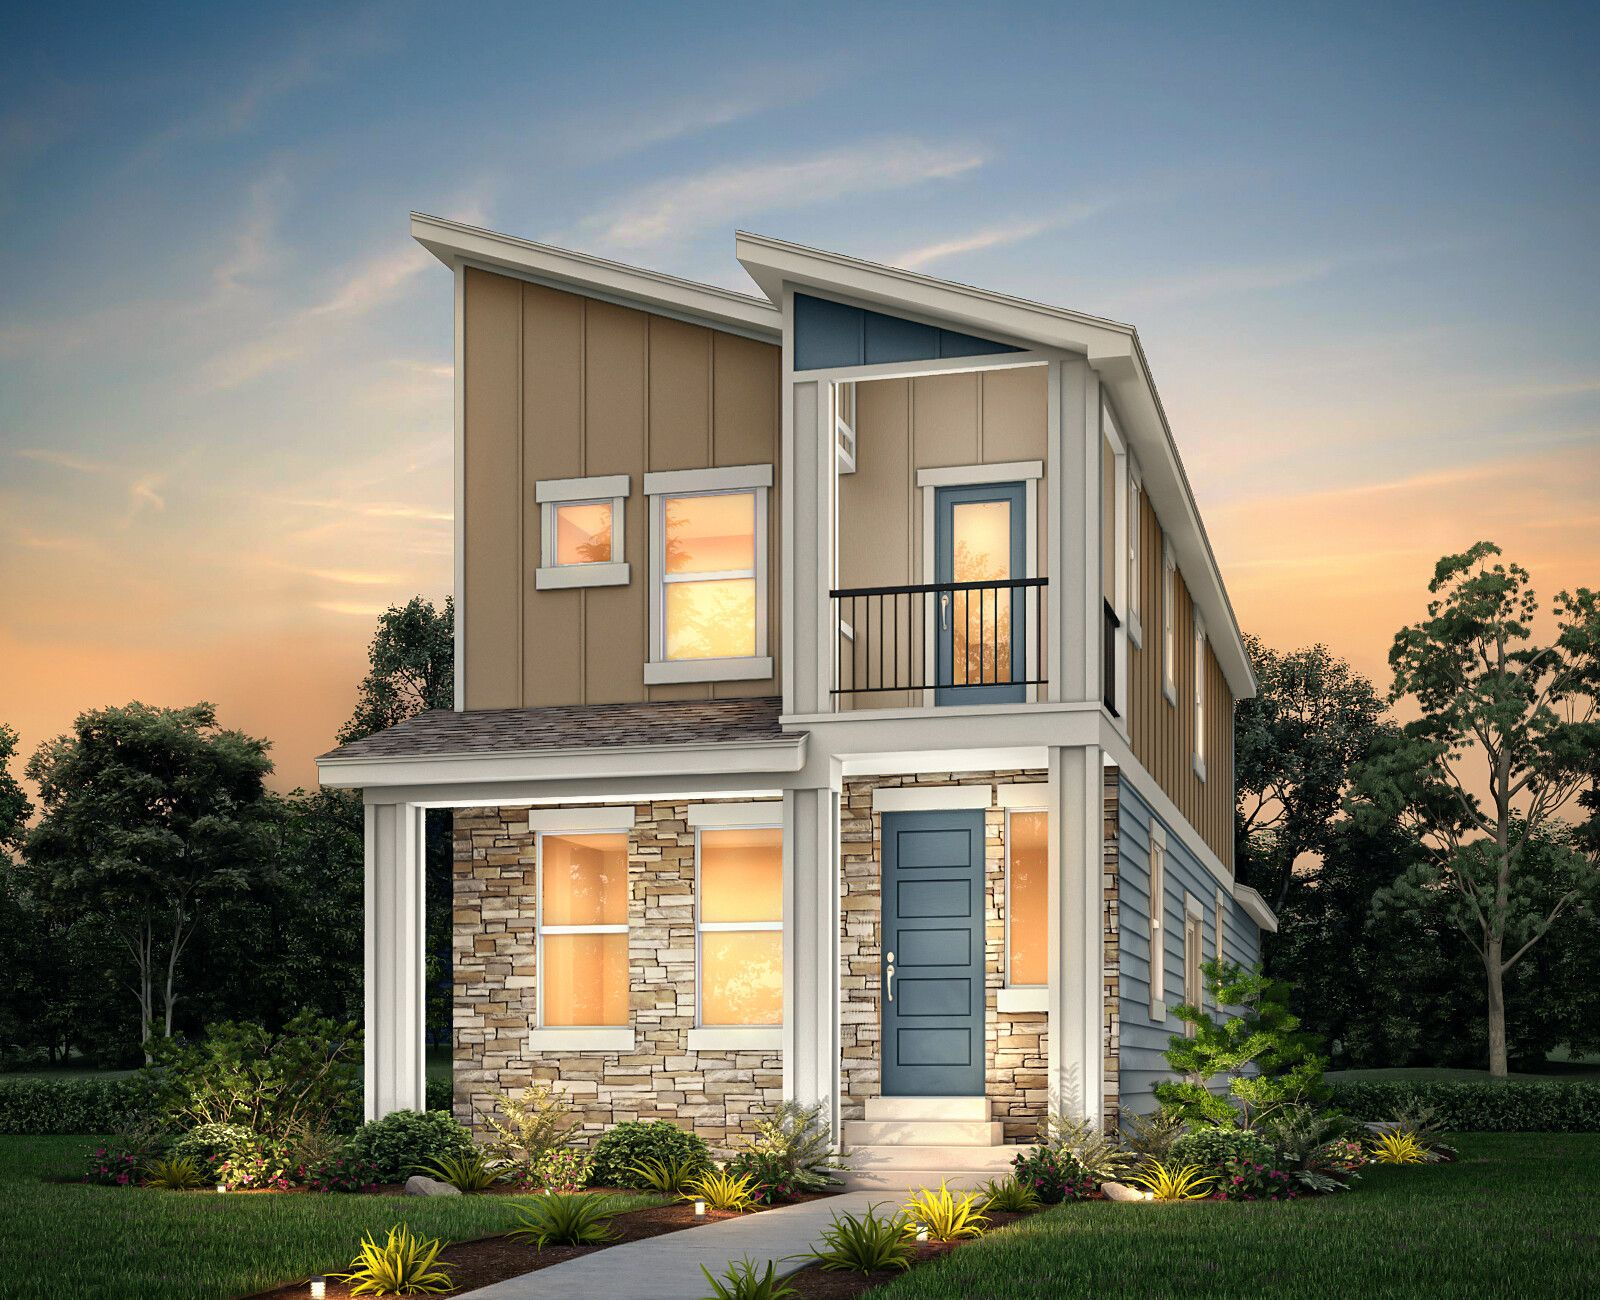 Exterior featured in the High Plains By View Homes Colorado Springs in Colorado Springs, CO